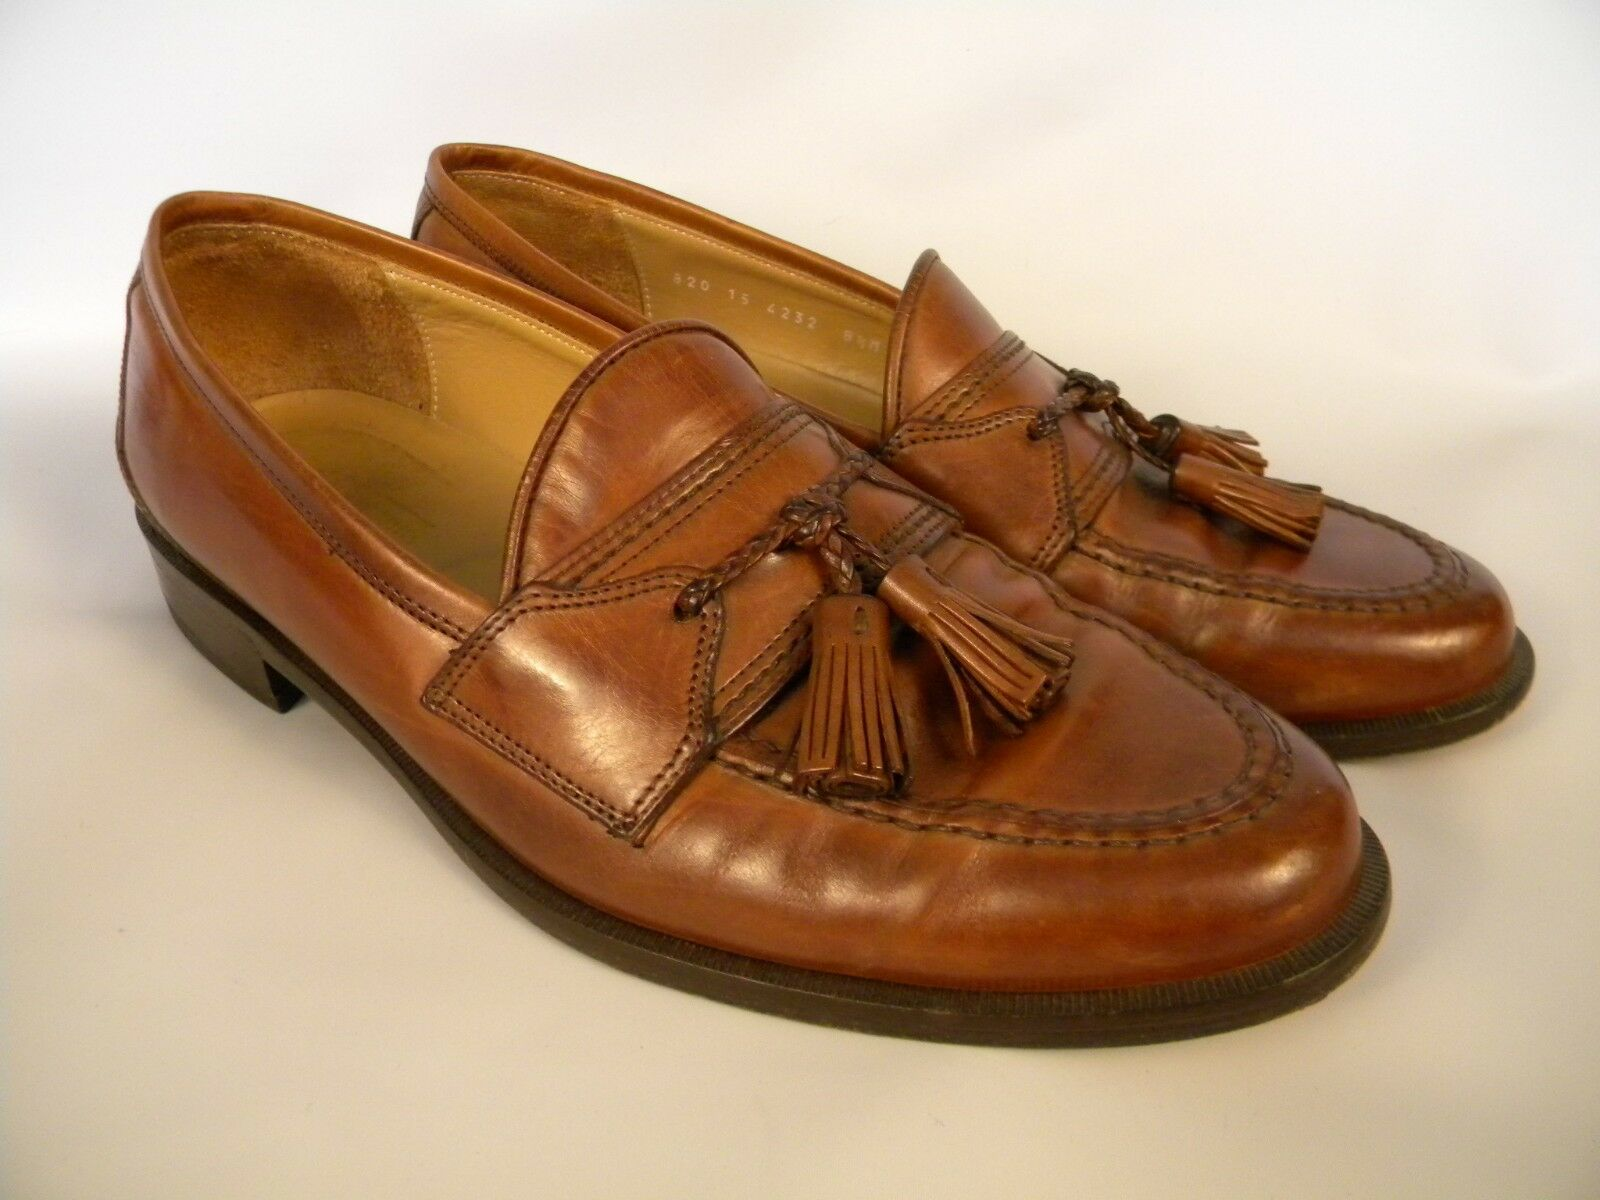 Johnson Murphy Brown Leather Tassel Loafers Hand Made in  Size 8.5 M 69184